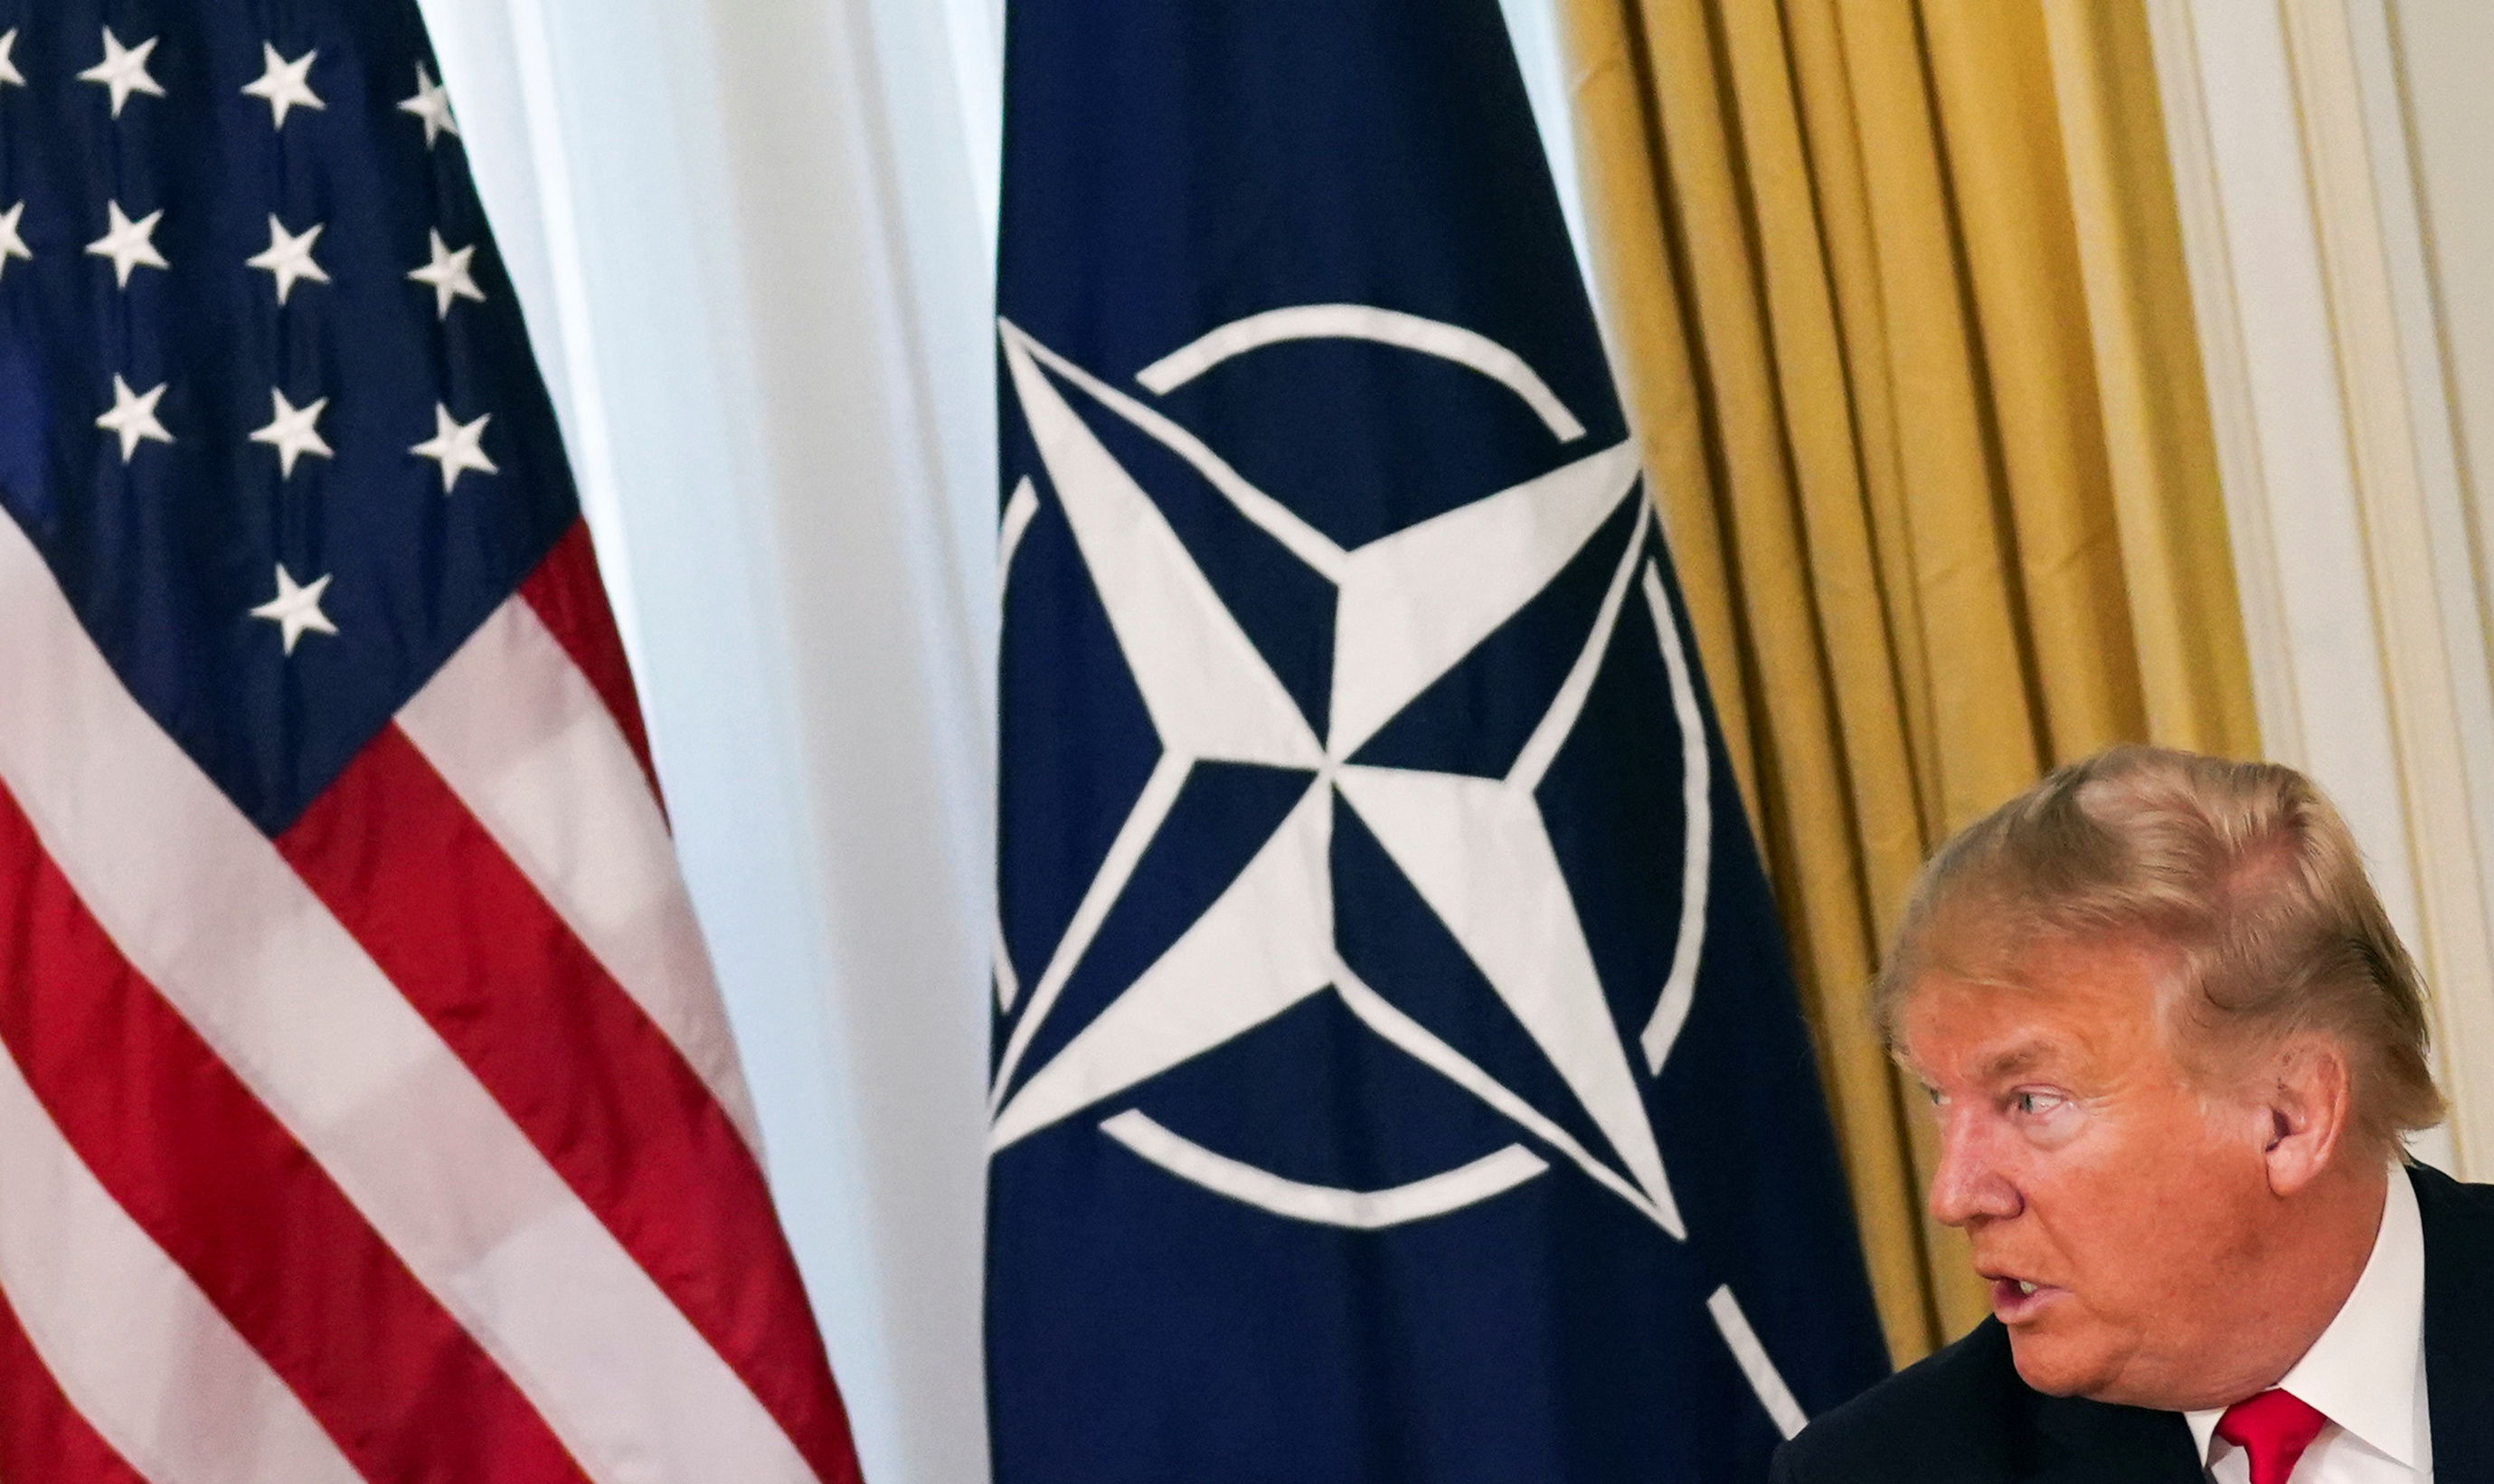 US President Donald Trump is shown looking to his right and sitting in front of the US and NATO flags.